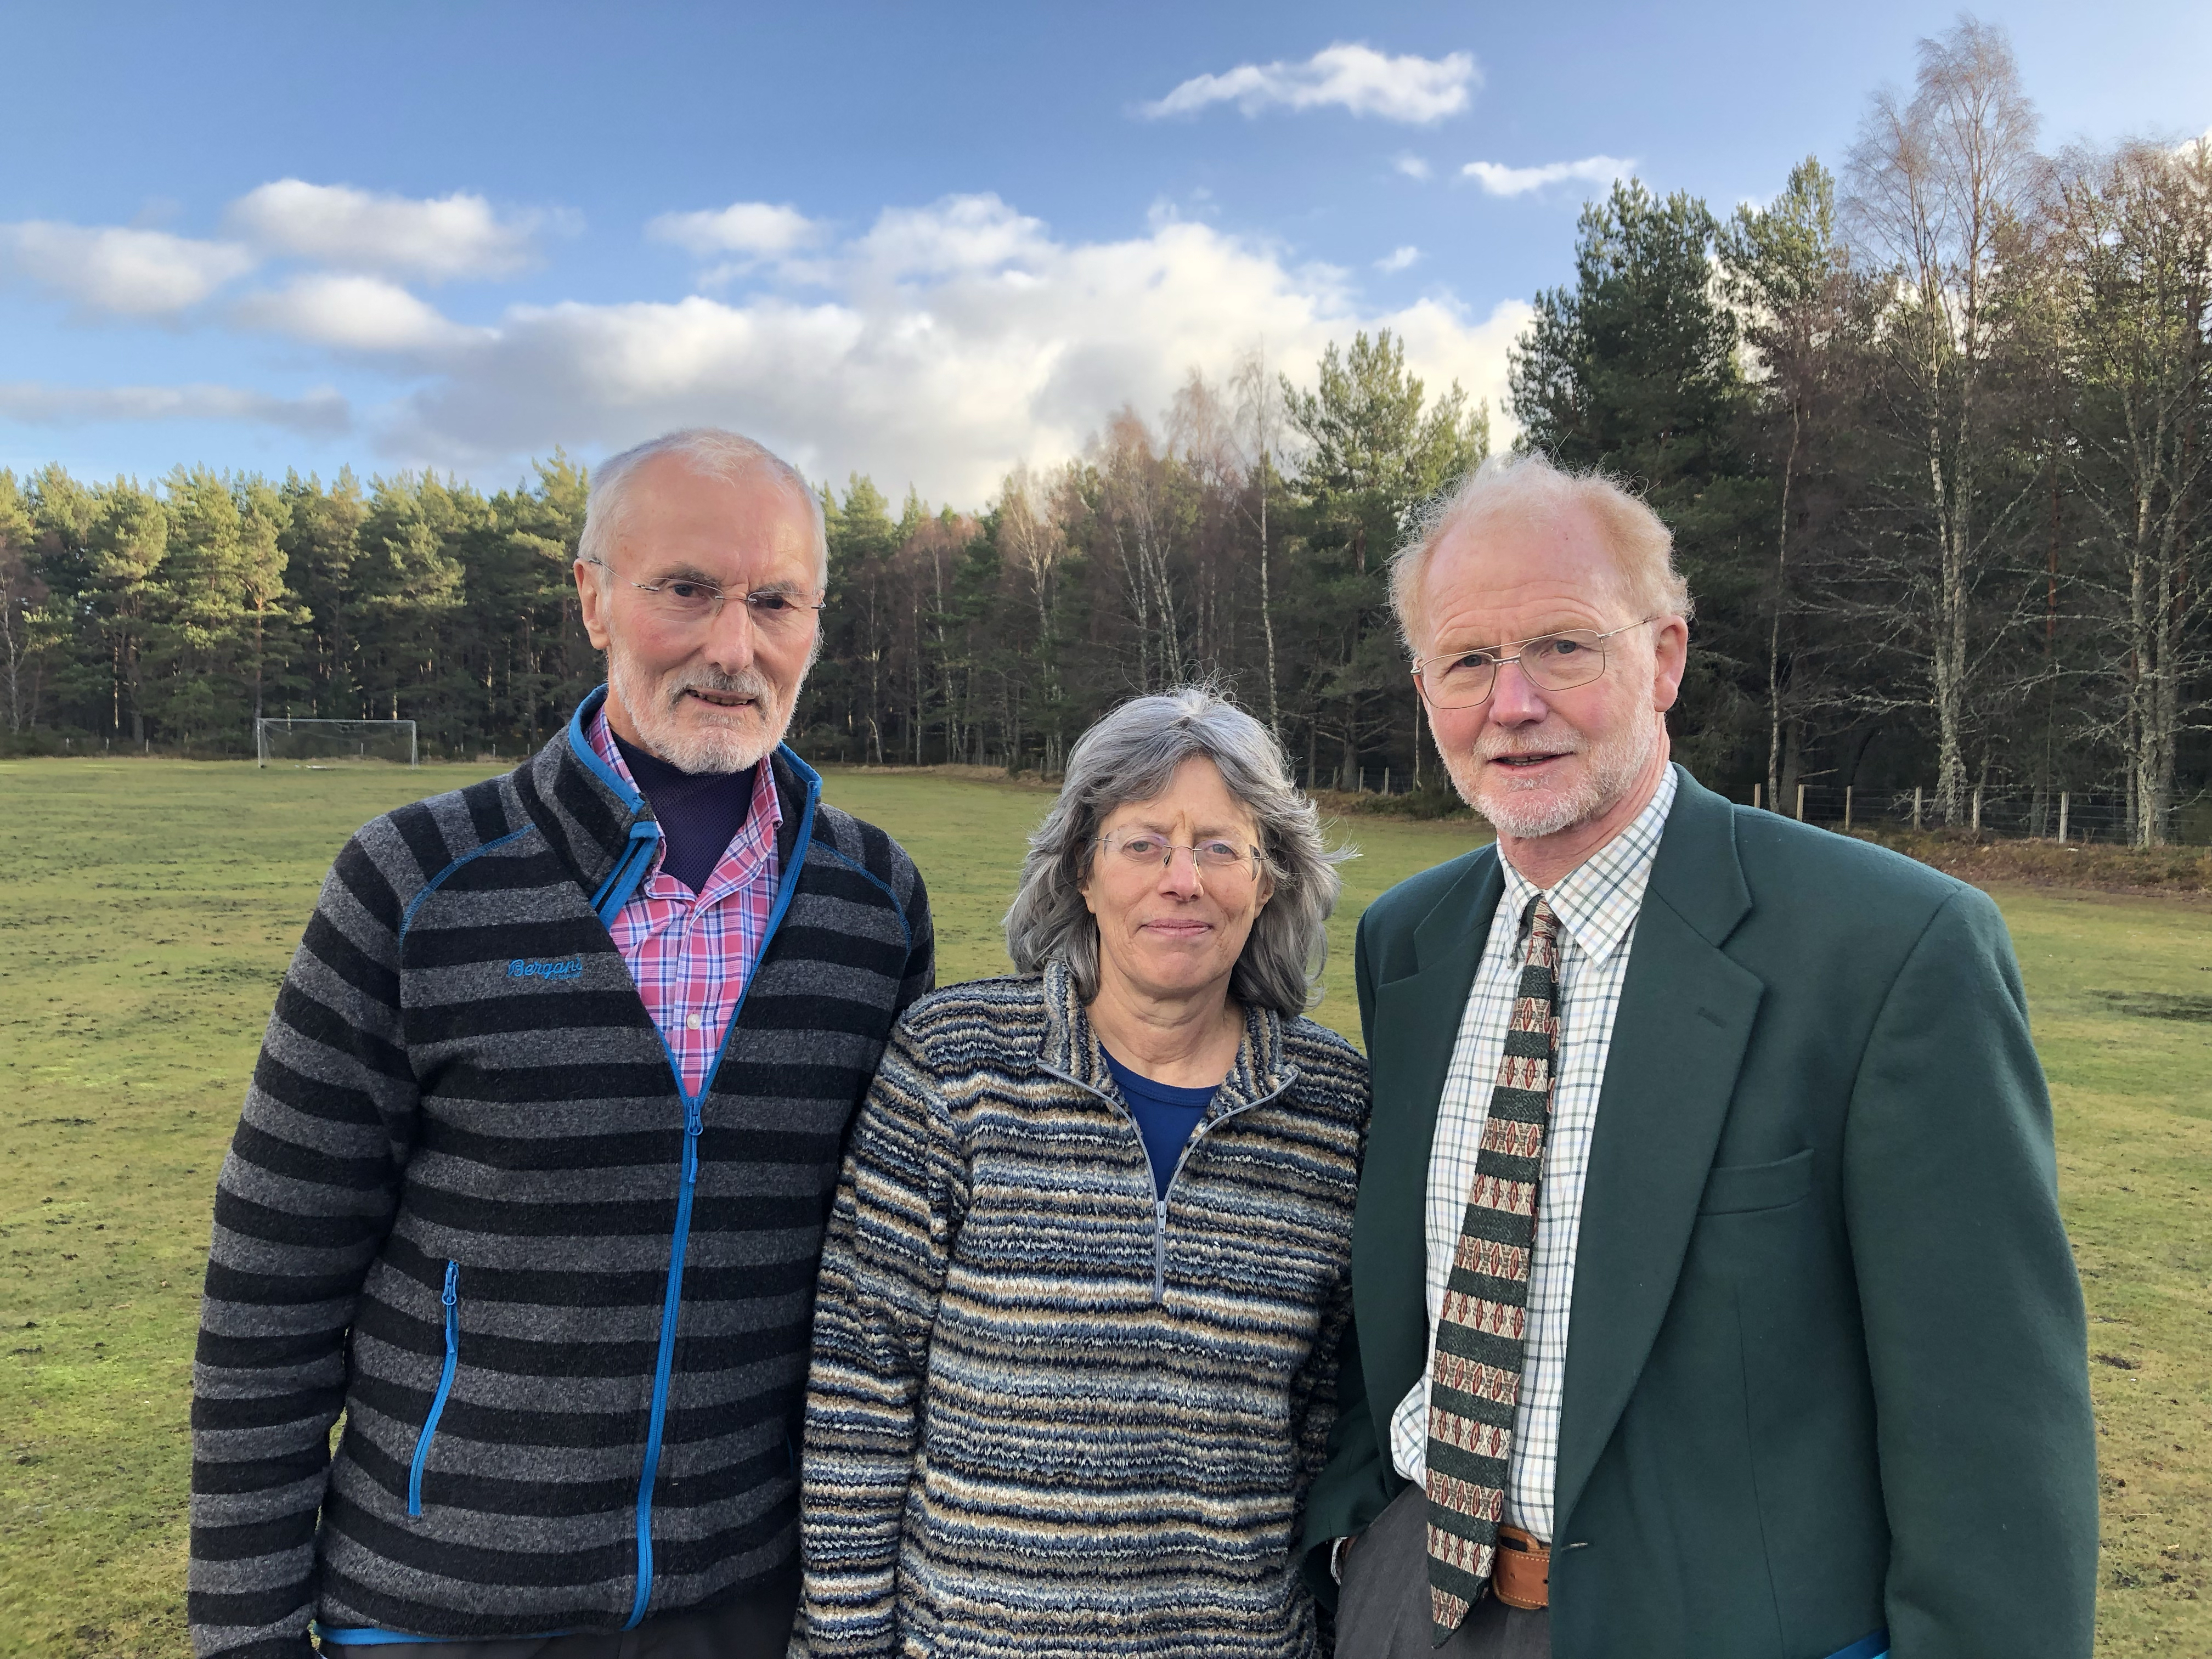 Local man Dave Morris, Tessa Jones of the Badenoch and Strathspey Conservation Group and George Allan of the North East Mountain Trust were left disappointed at the decision after providing committee members with their reasons why the application should be rejected